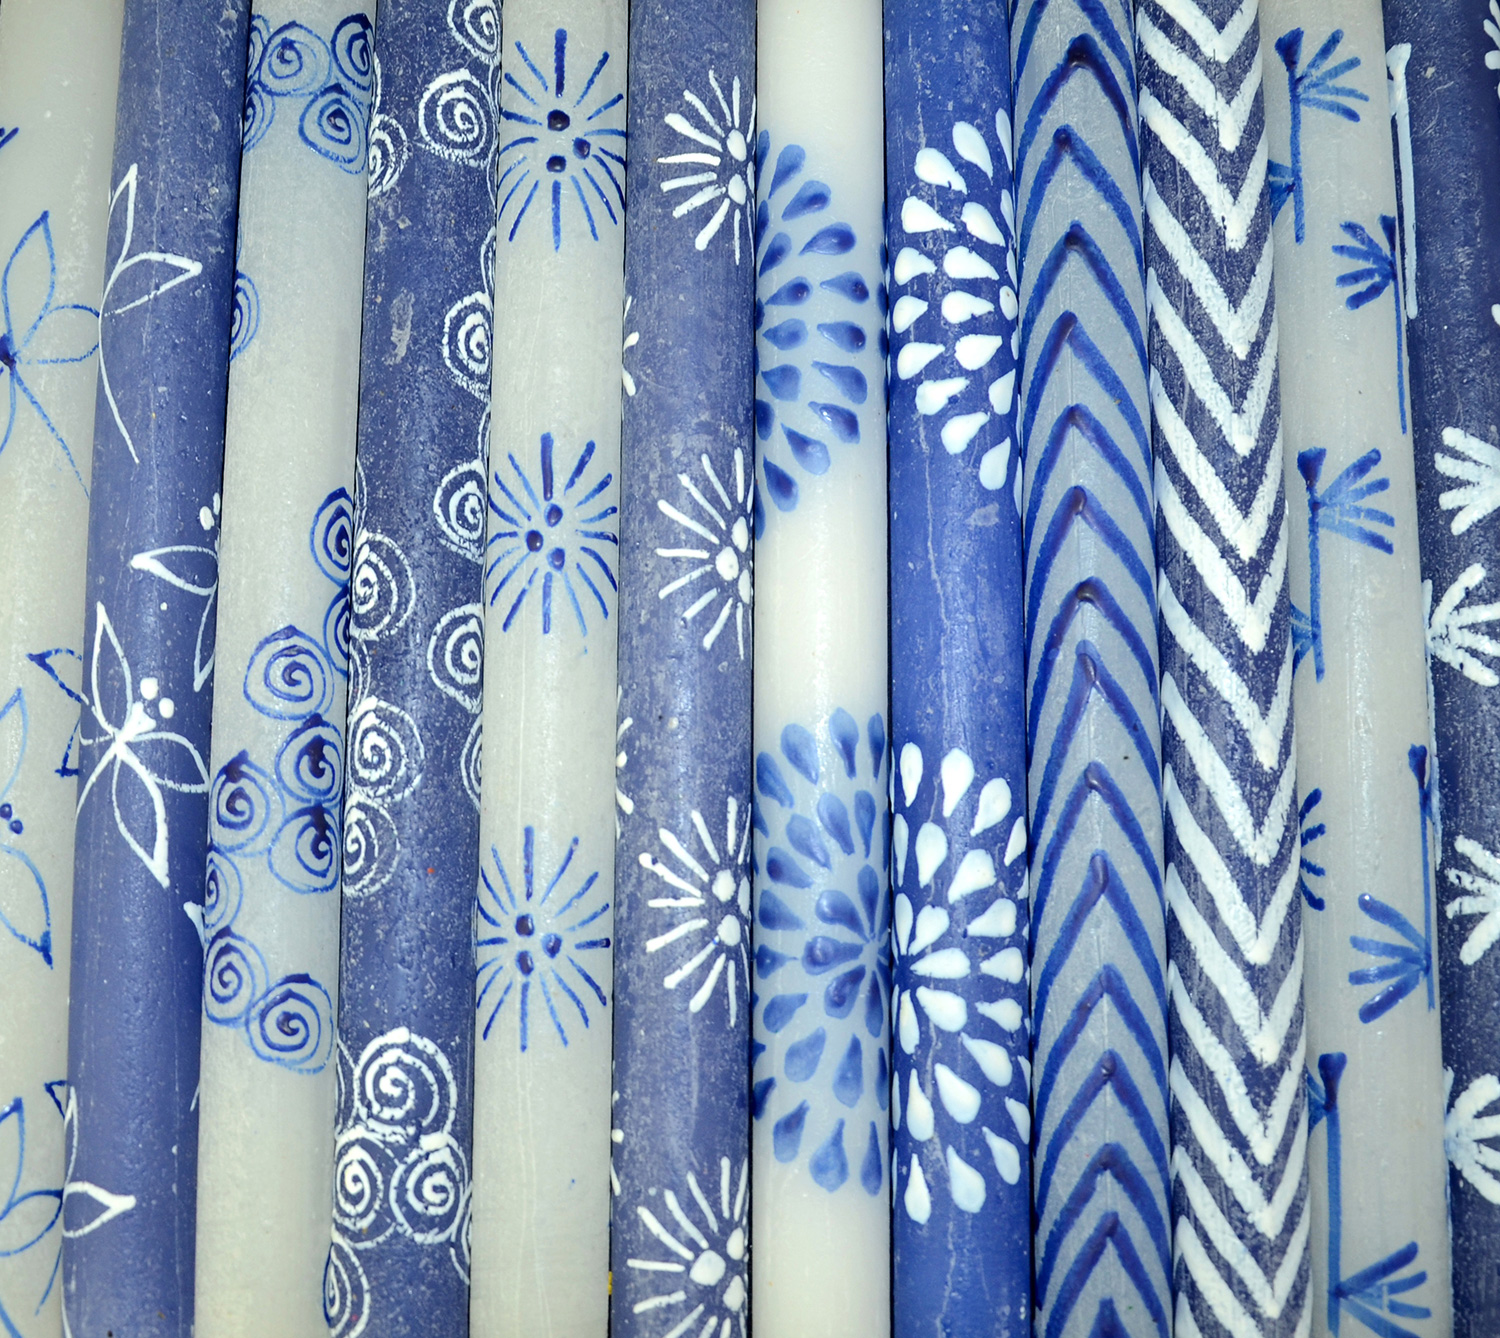 BLUE & WHITE (FROST)